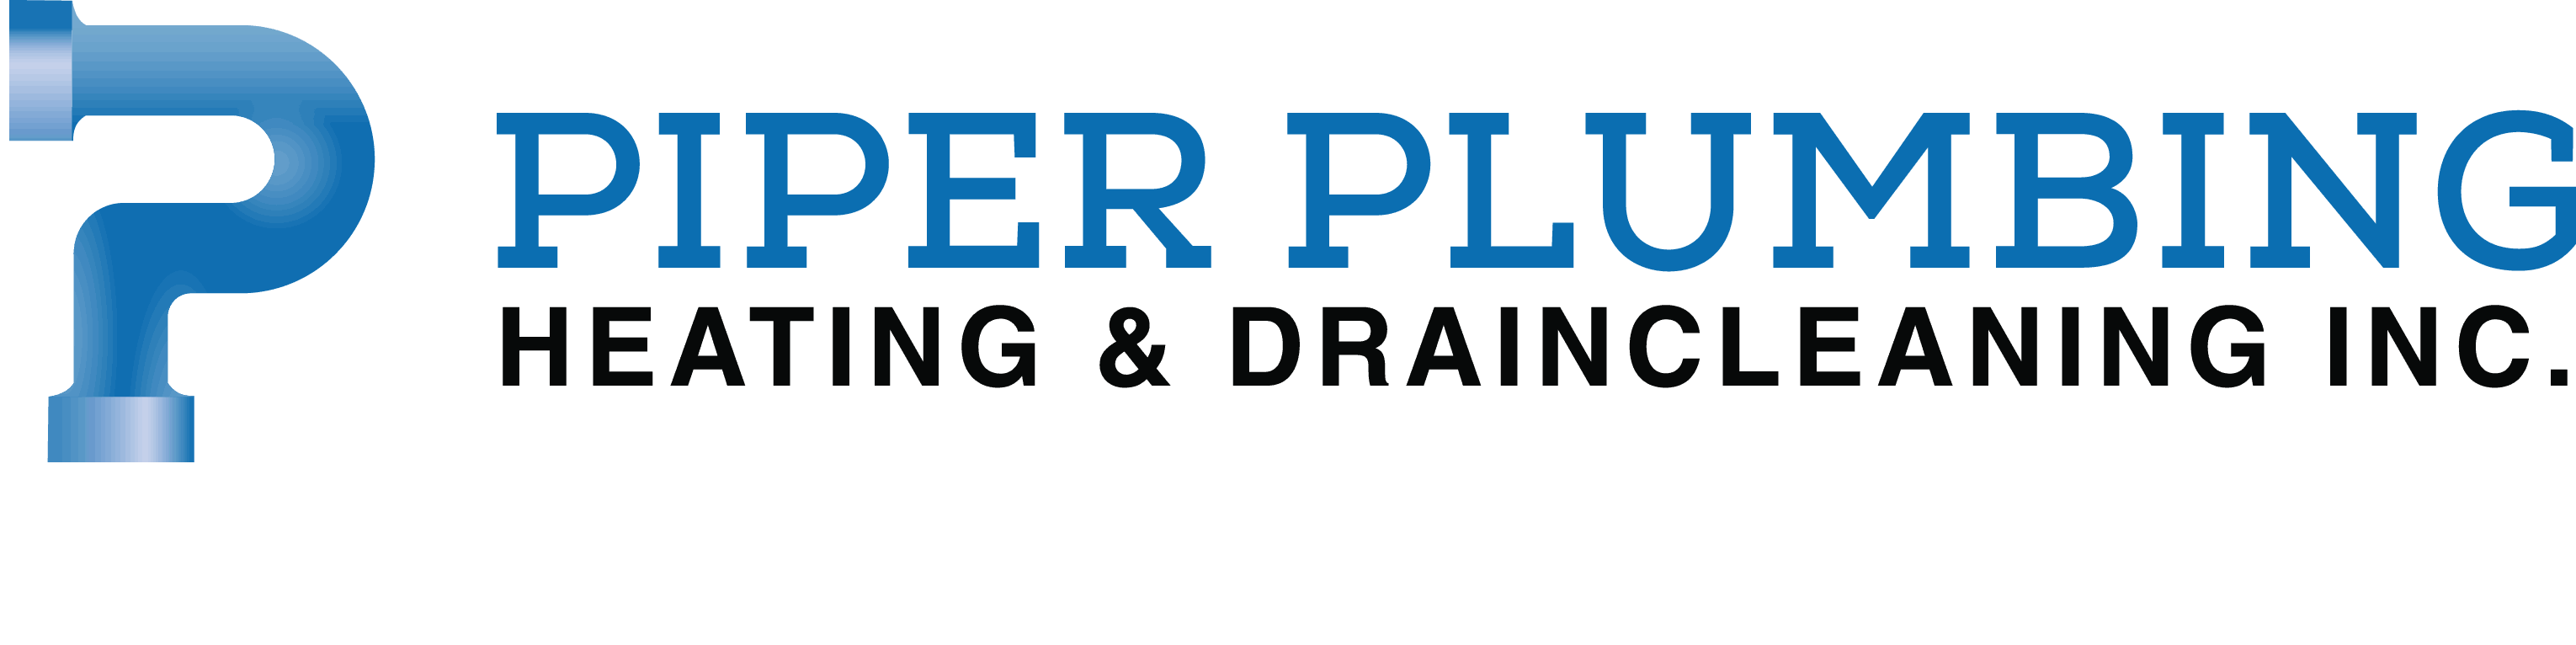 Piper Plumbing of Edmonton